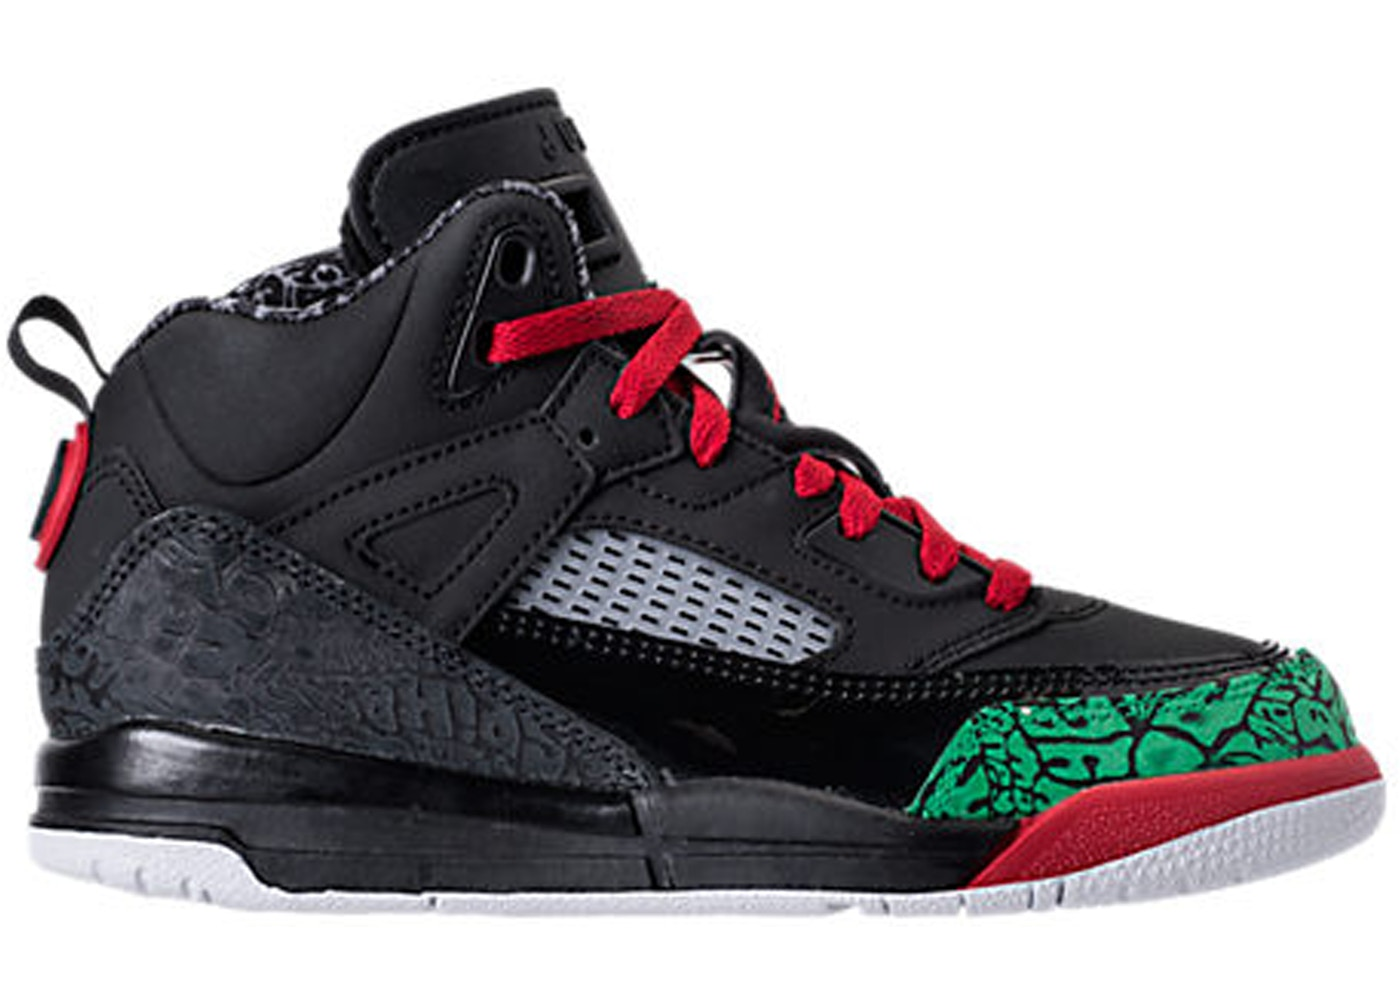 a717e22a663a Air Jordan Spizike Shoes - Release Date